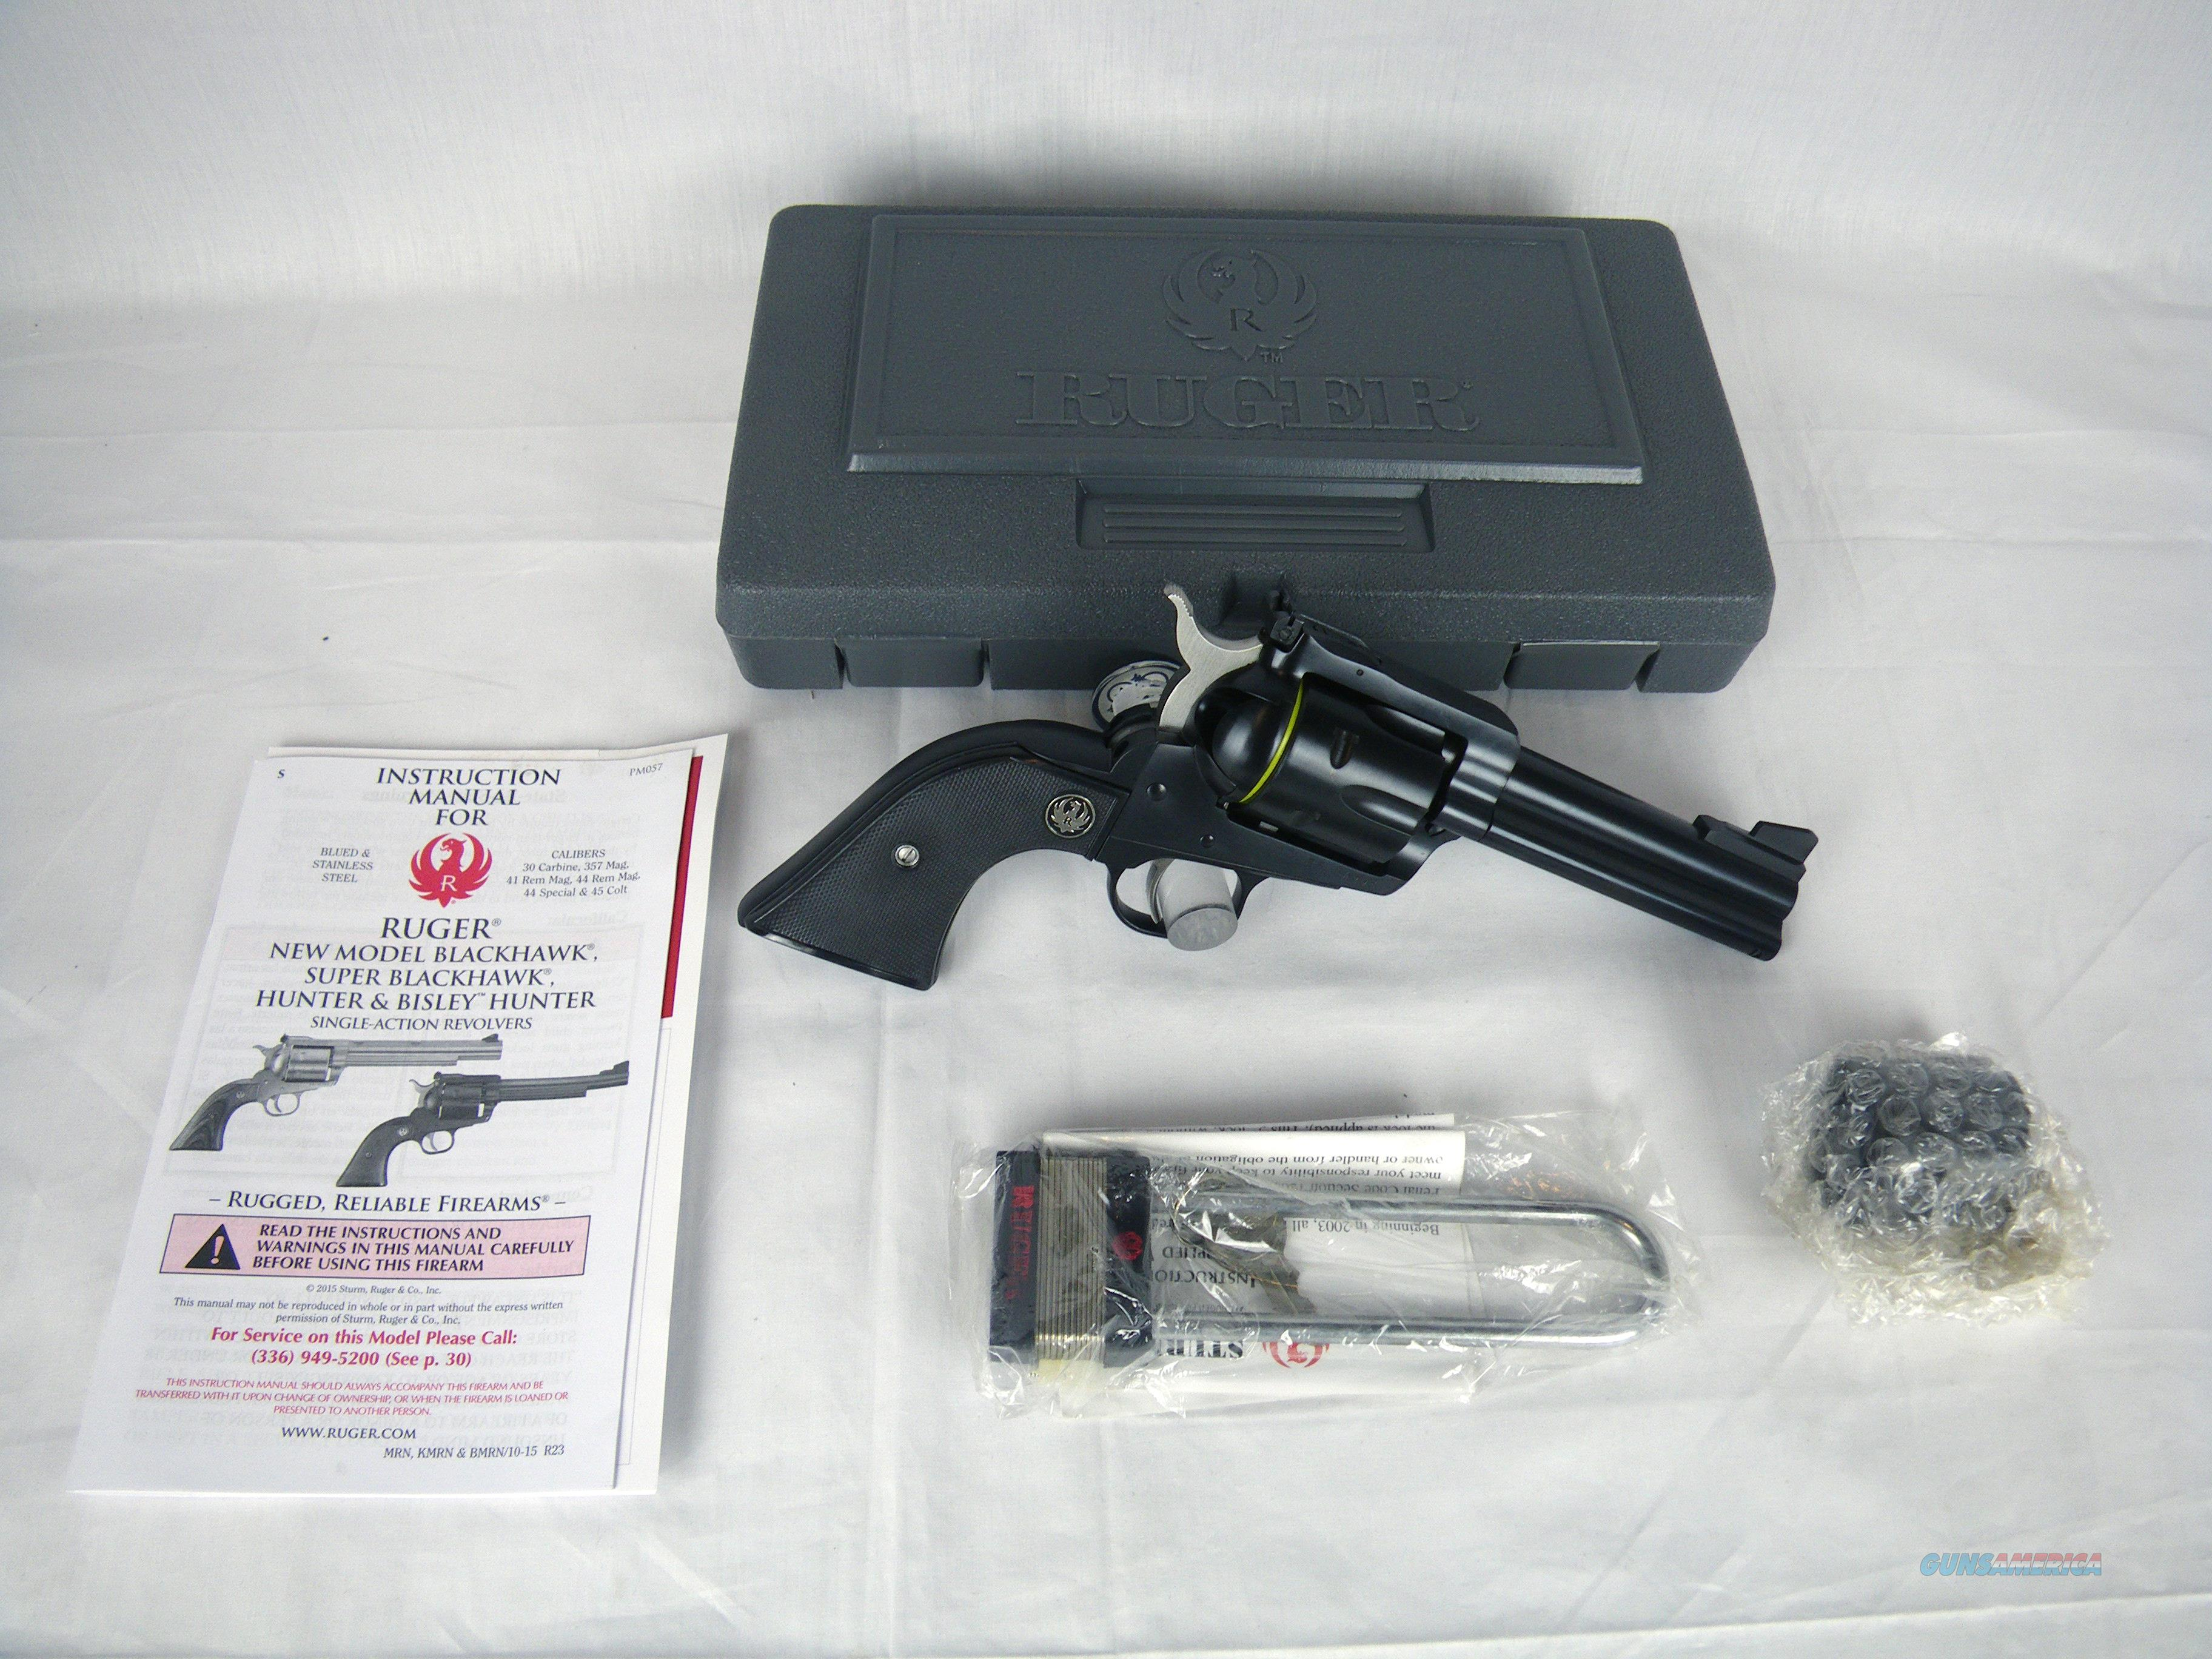 Ruger Blackhawk New Model Convertible 357/9mm NEW #0308  Guns > Pistols > Ruger Single Action Revolvers > Blackhawk Type